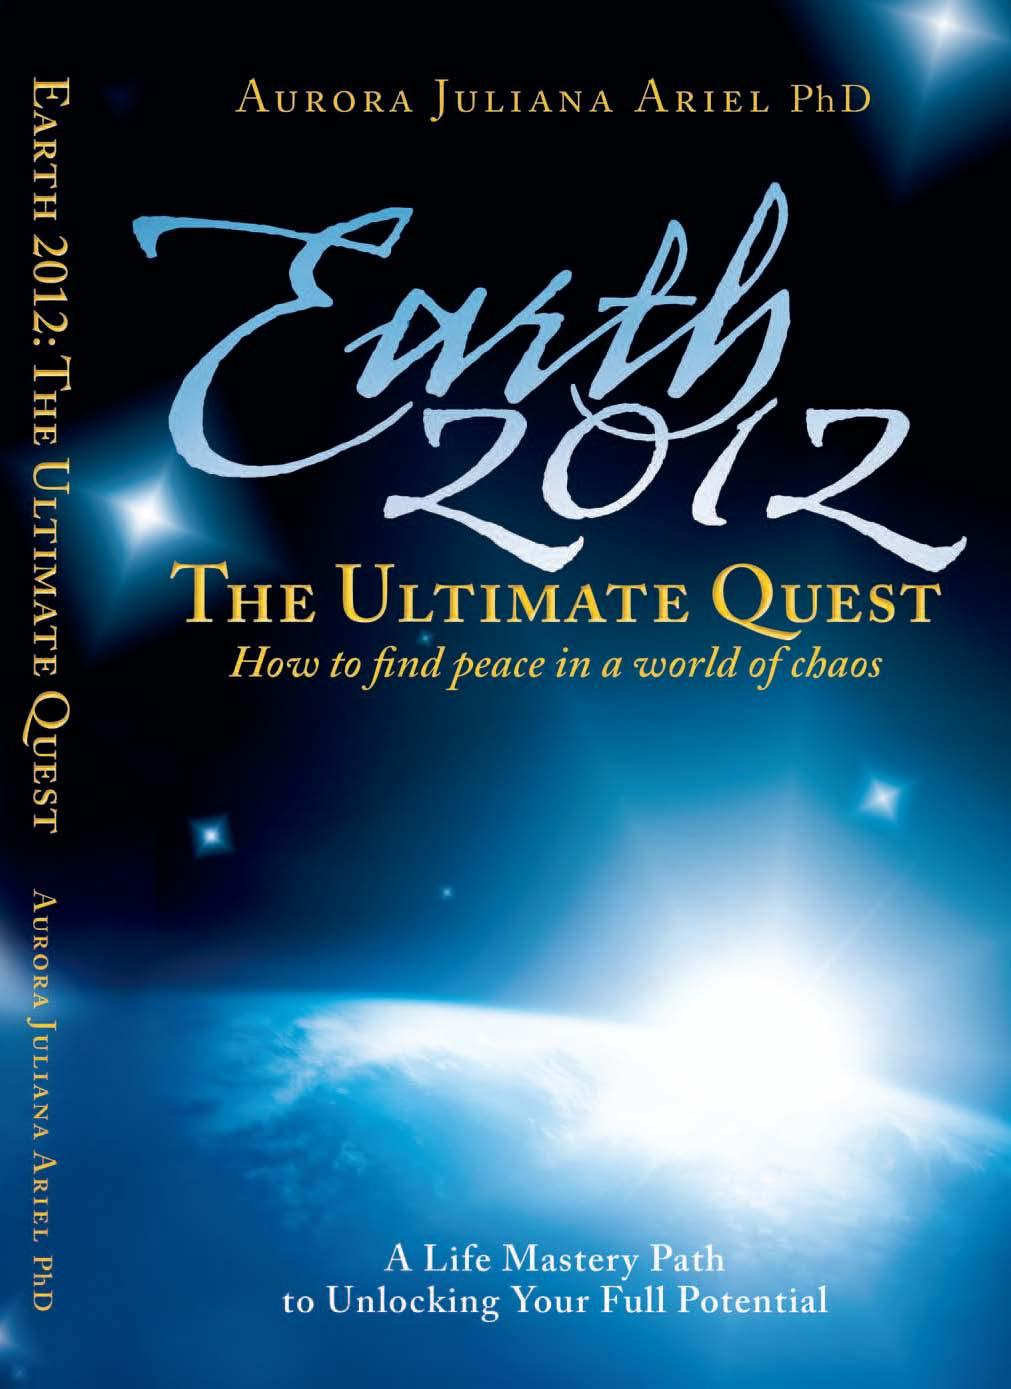 Earth 2012: The Ultimate Quest